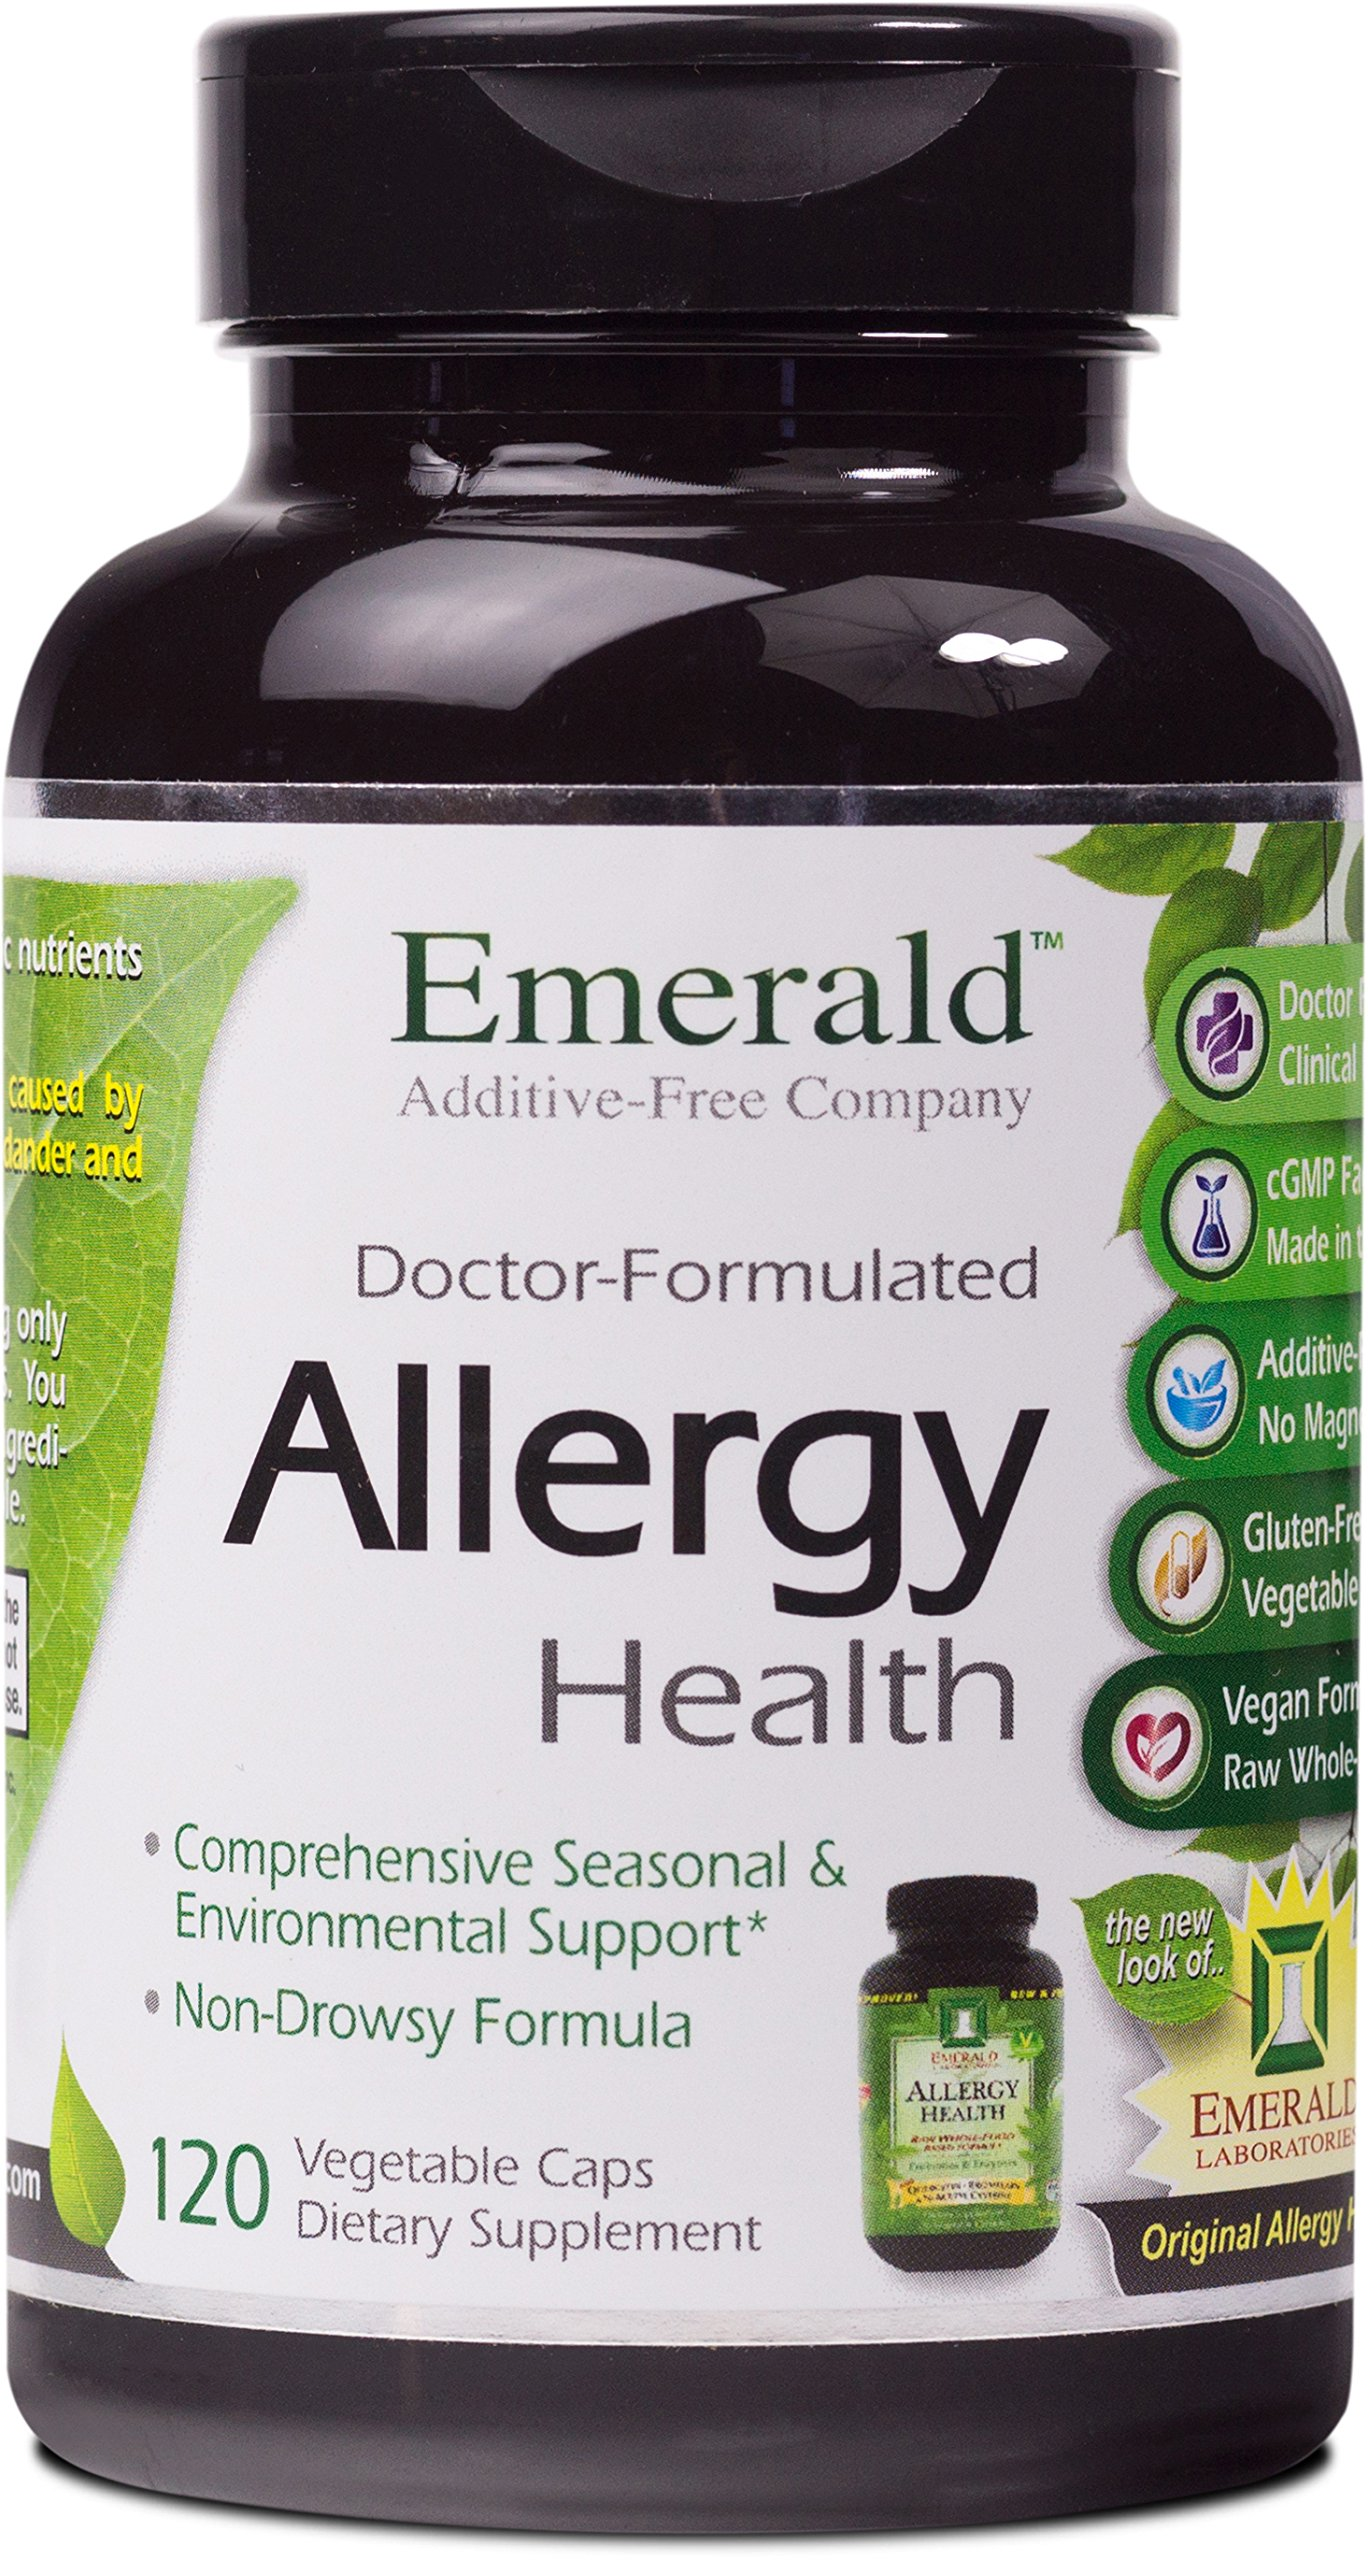 Allergy Health - with Quercetin, Bromelain & N-Acetyl Cysteine - Natural Antihistamine & Anti Inflammatory, Relief for Cough, Runny Nose, Itchy Eyes - Emerald Laboratories - 120 Vegetable Capsules